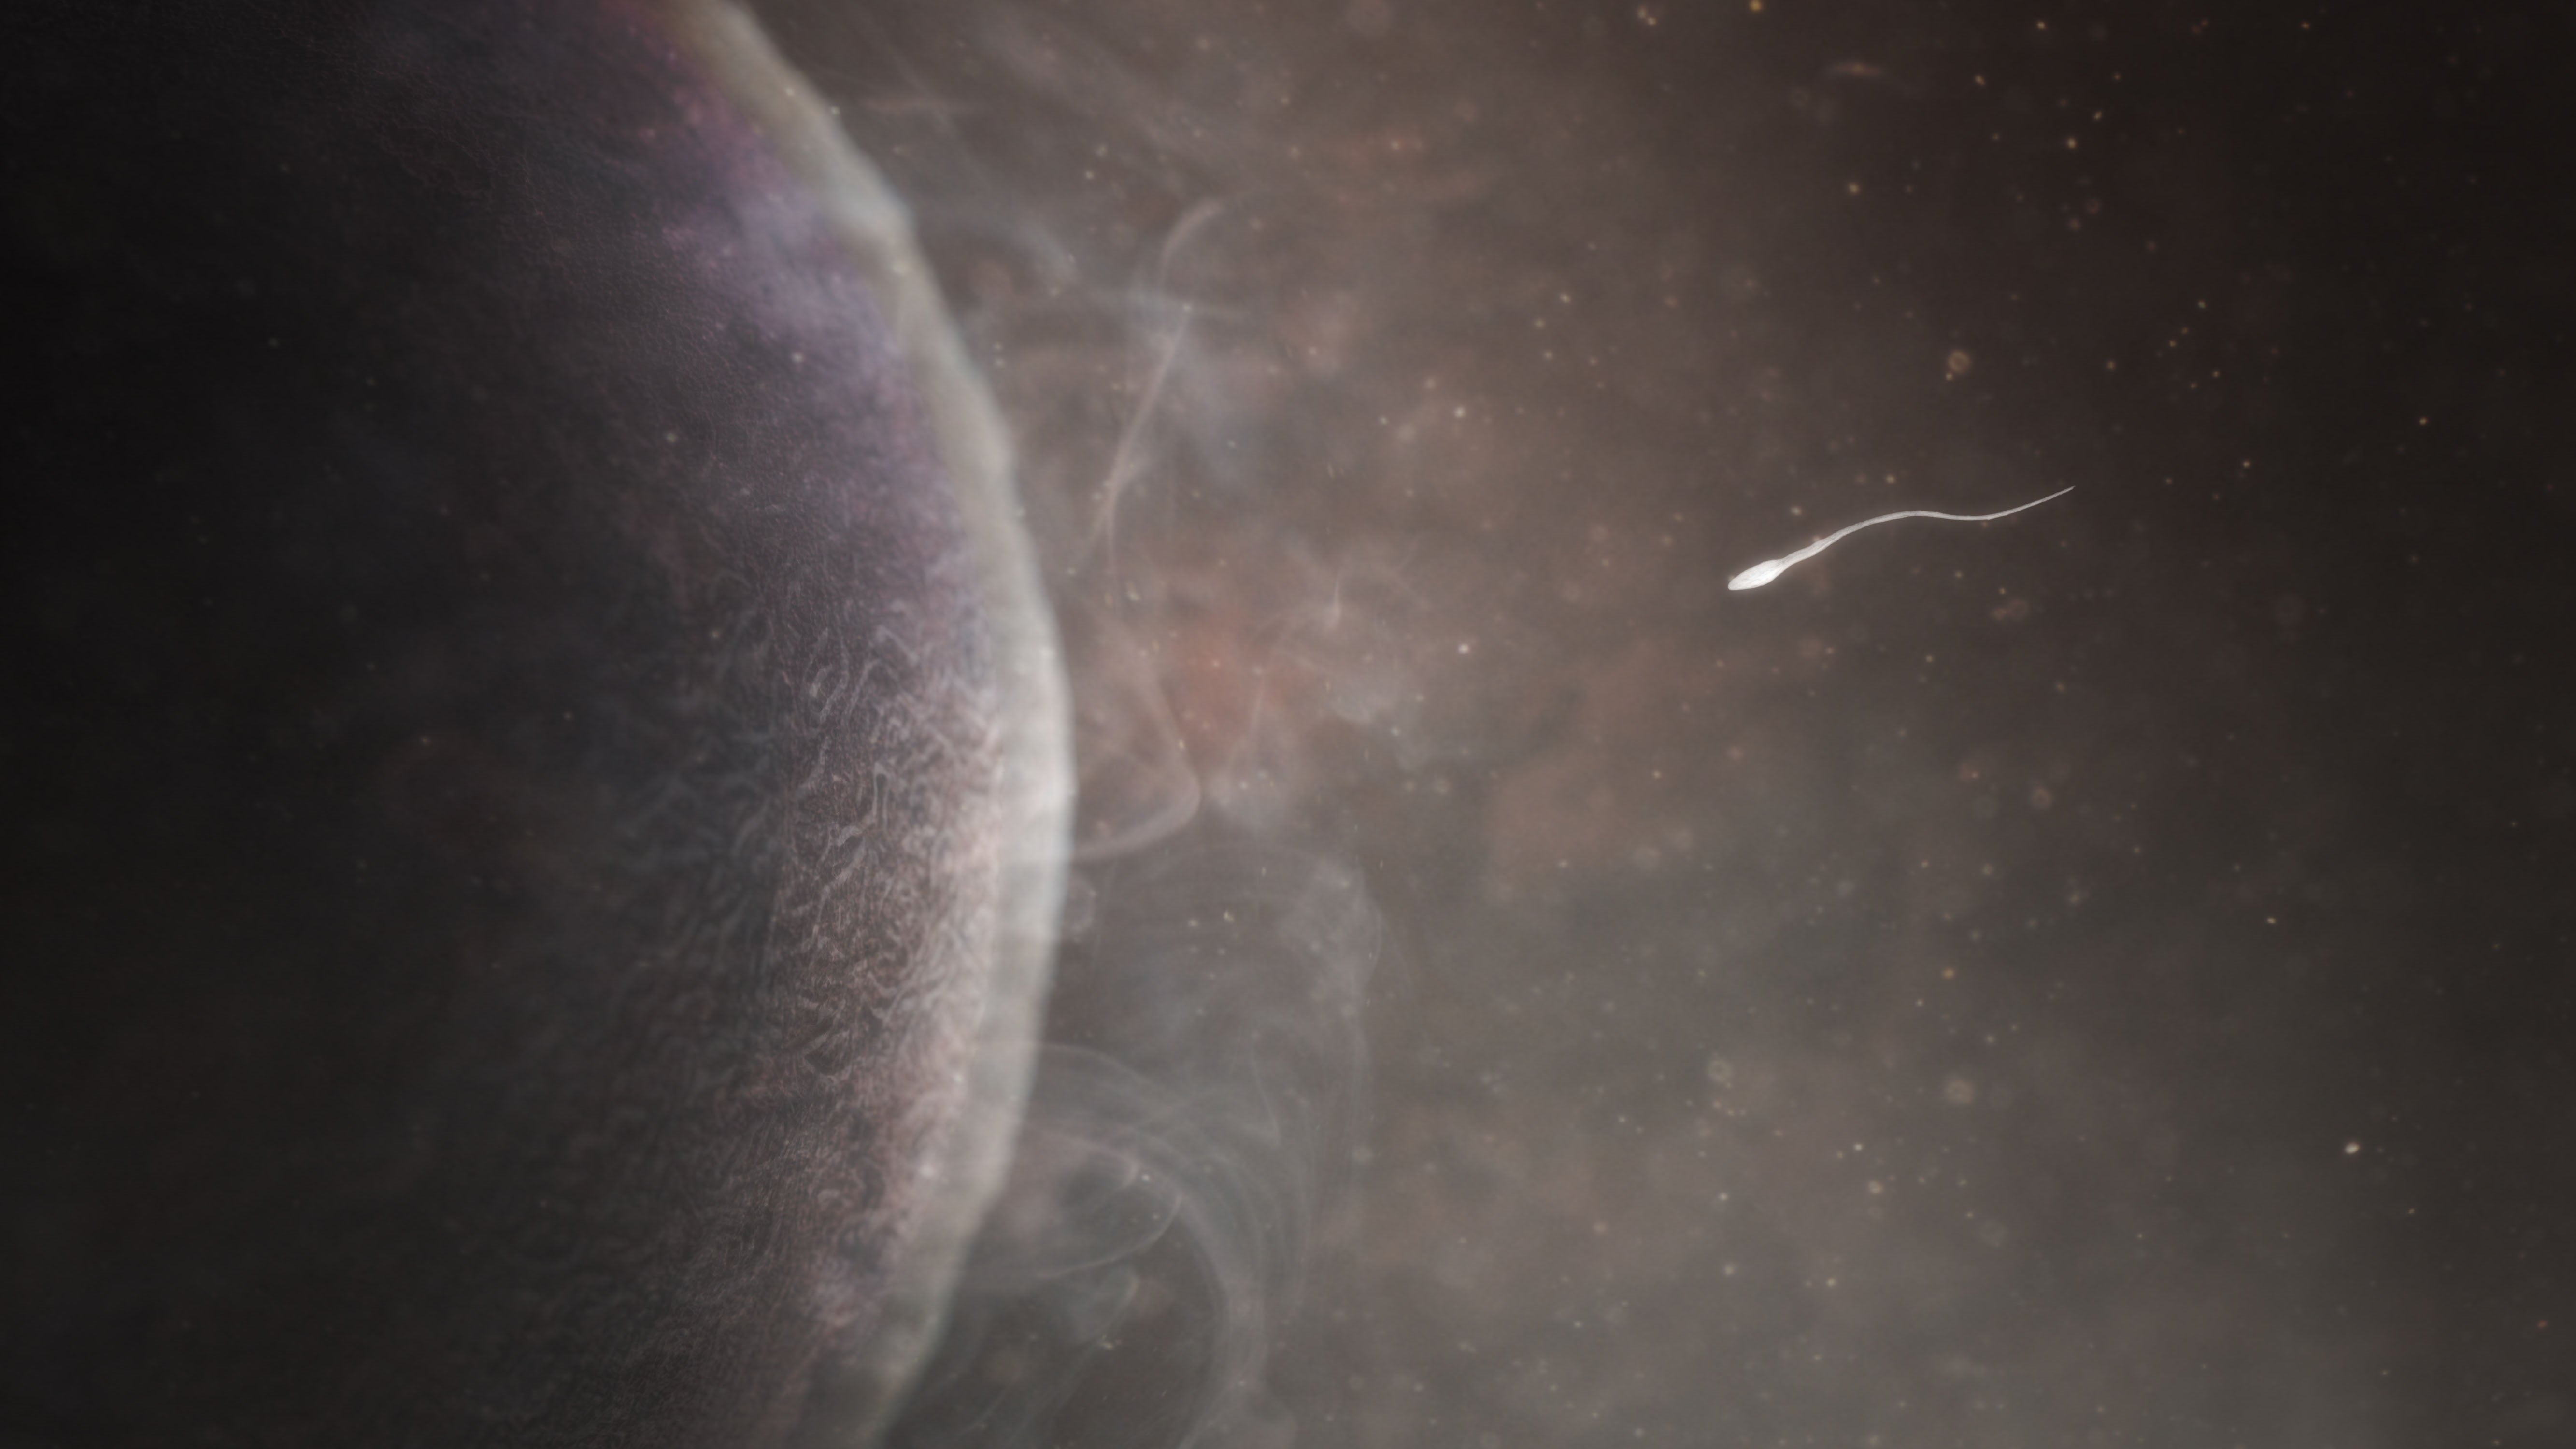 A sperm swims towards an egg, from the BBC series Countdown to life